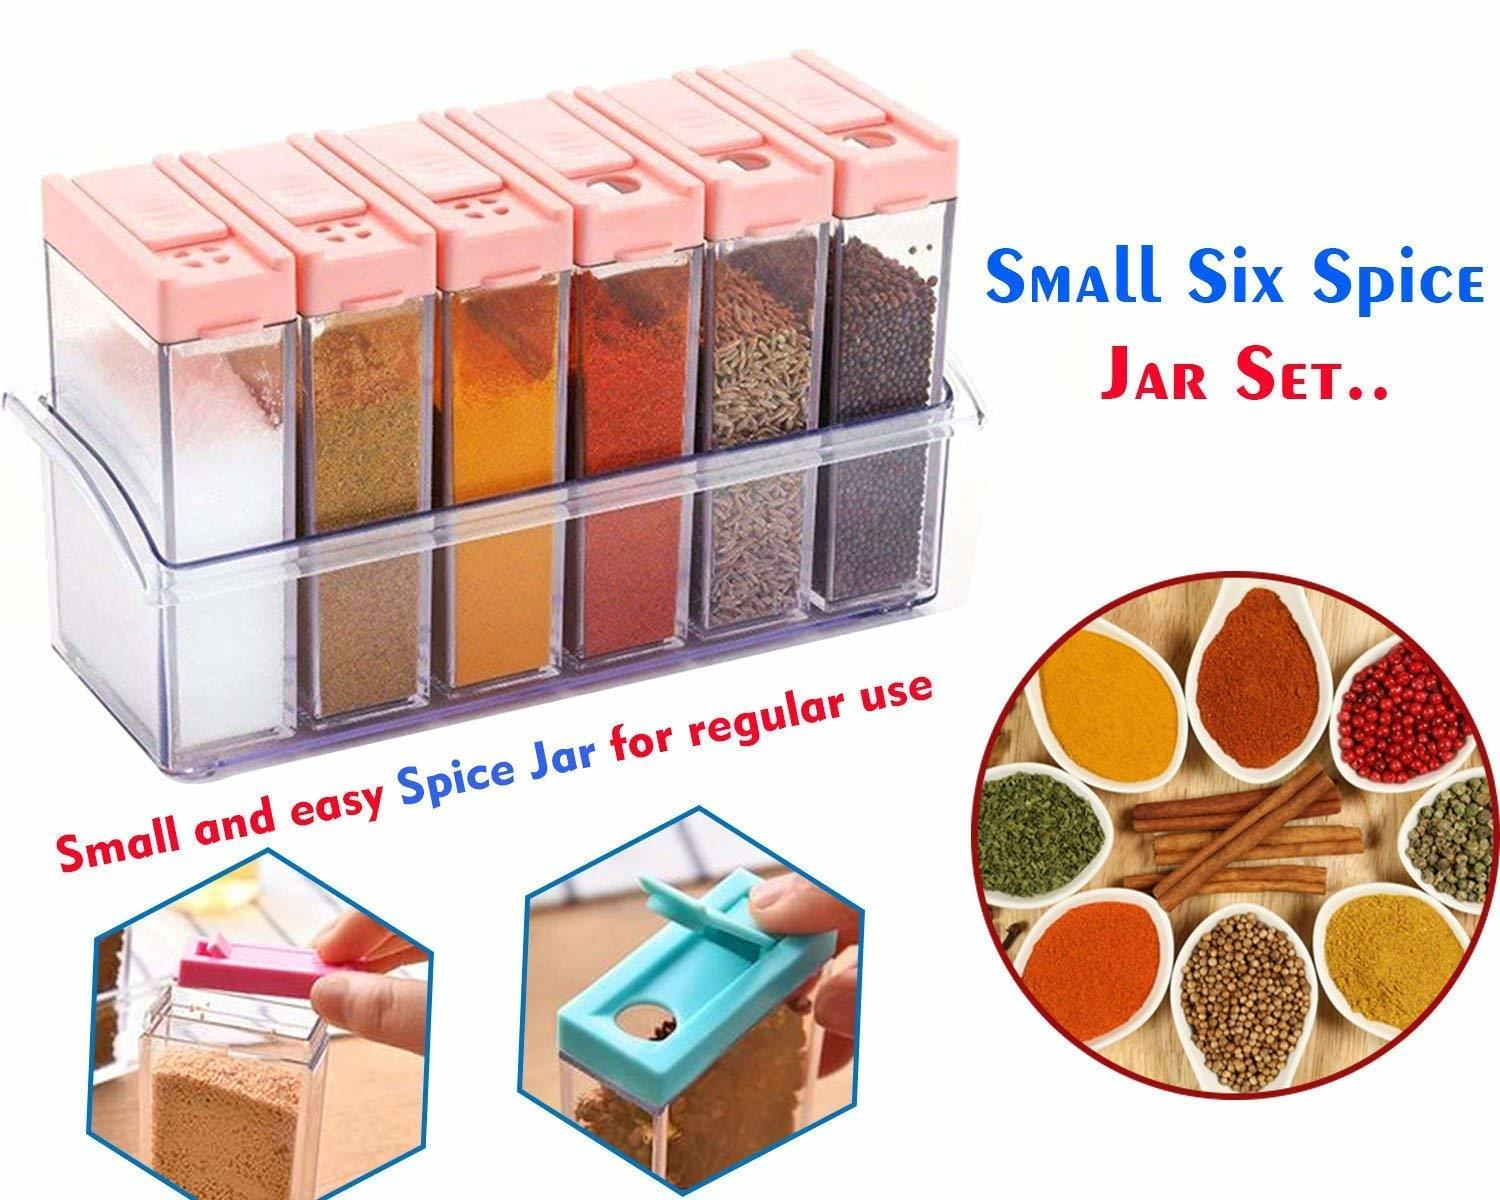 Spice Jar 6 Pcs Set, Easy Flow Storage, Idle For Kitchen- Storage Box Container (Color May Vary)